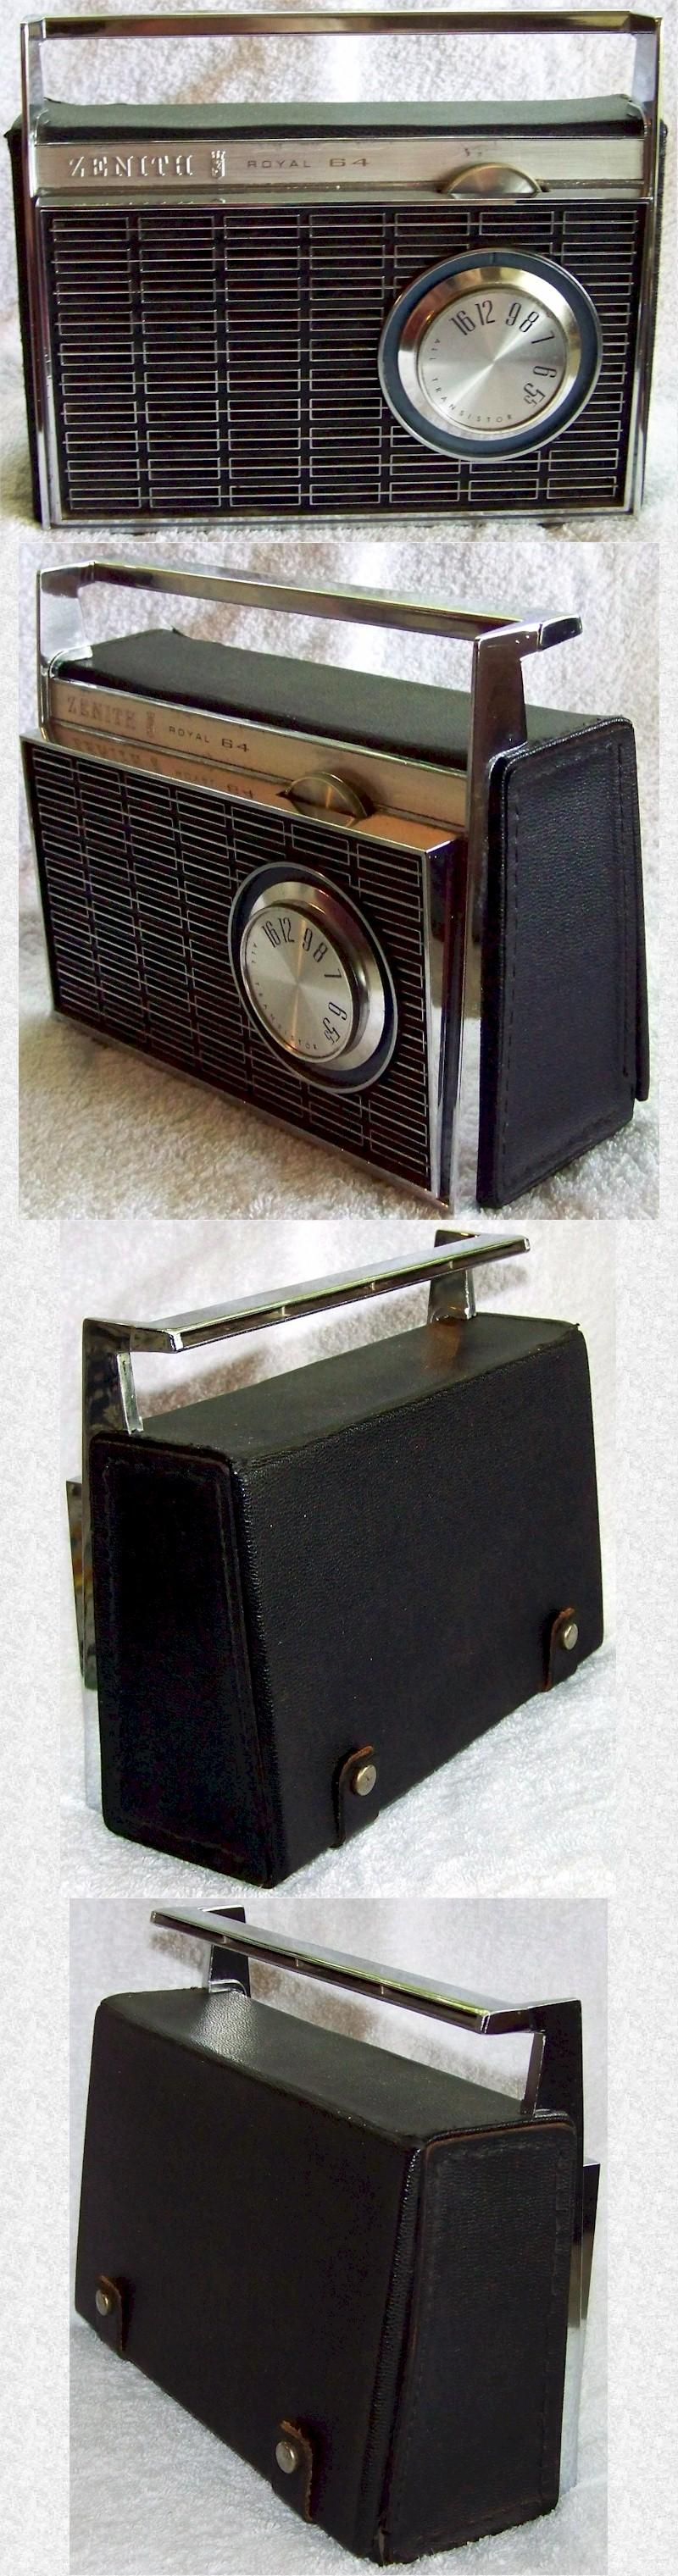 Zenith Royal 64 Portable Transistor (mid-60s)